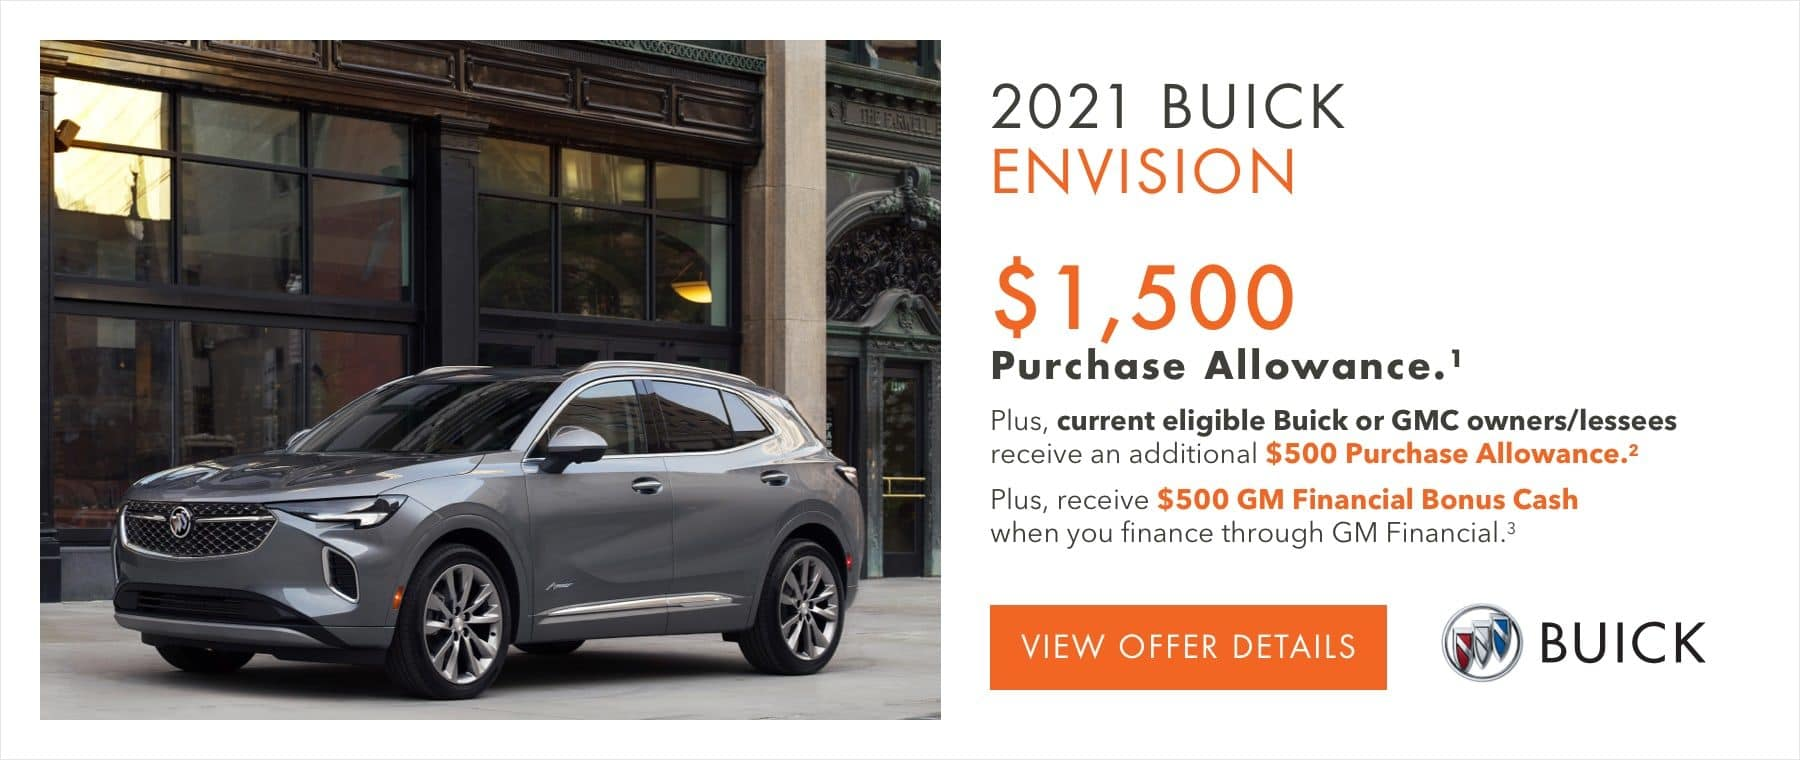 $1,500 Purchase Allowance.1 Plus, current eligible Buick or GMC owners/lessees receive an additional $500 Purchase Allowance.2 Plus, receive $500 GM Financial Bonus Cash when you finance through GM Financial.3